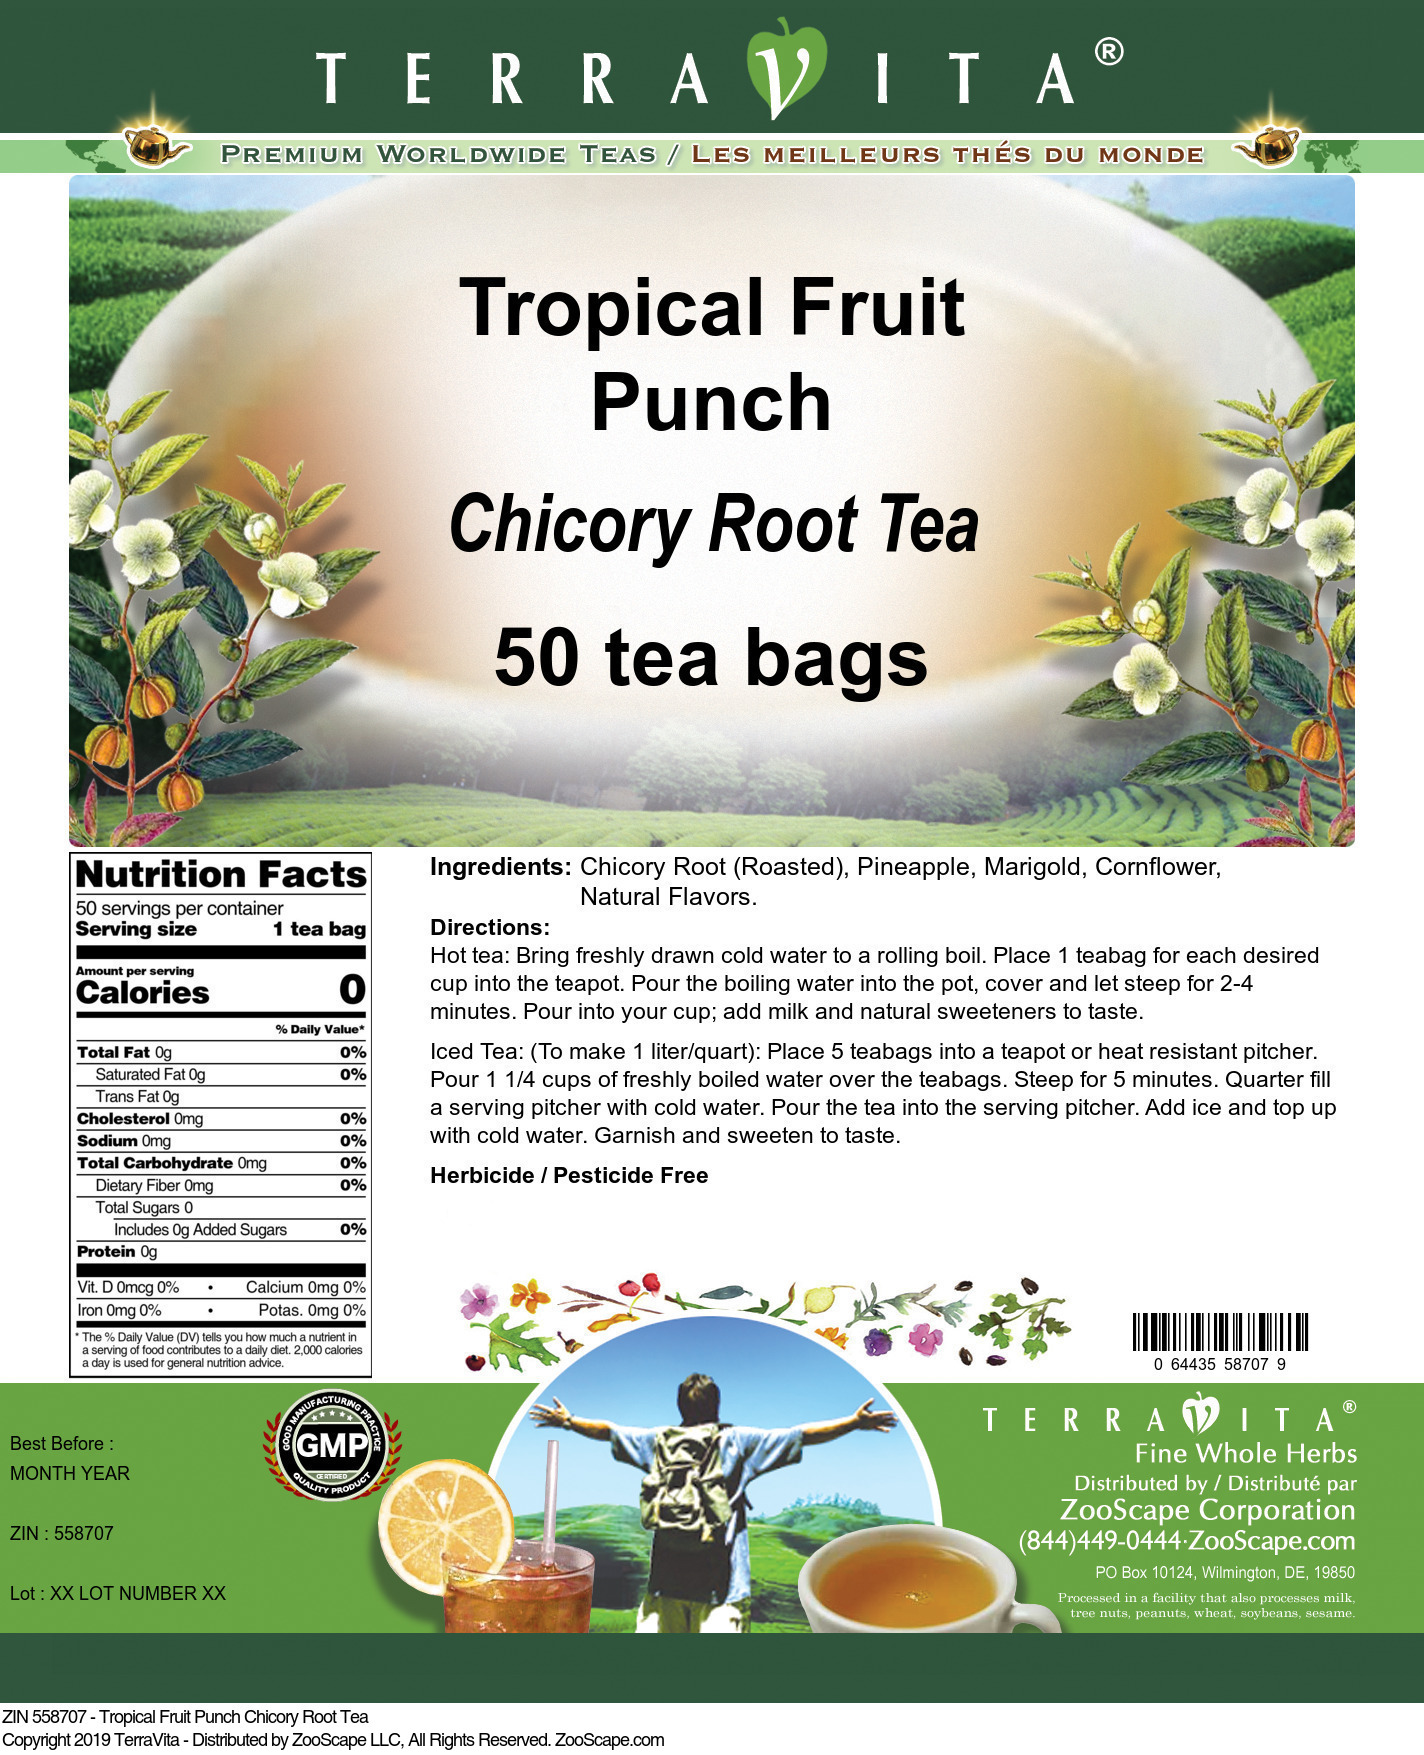 Tropical Fruit Punch Chicory Root Tea